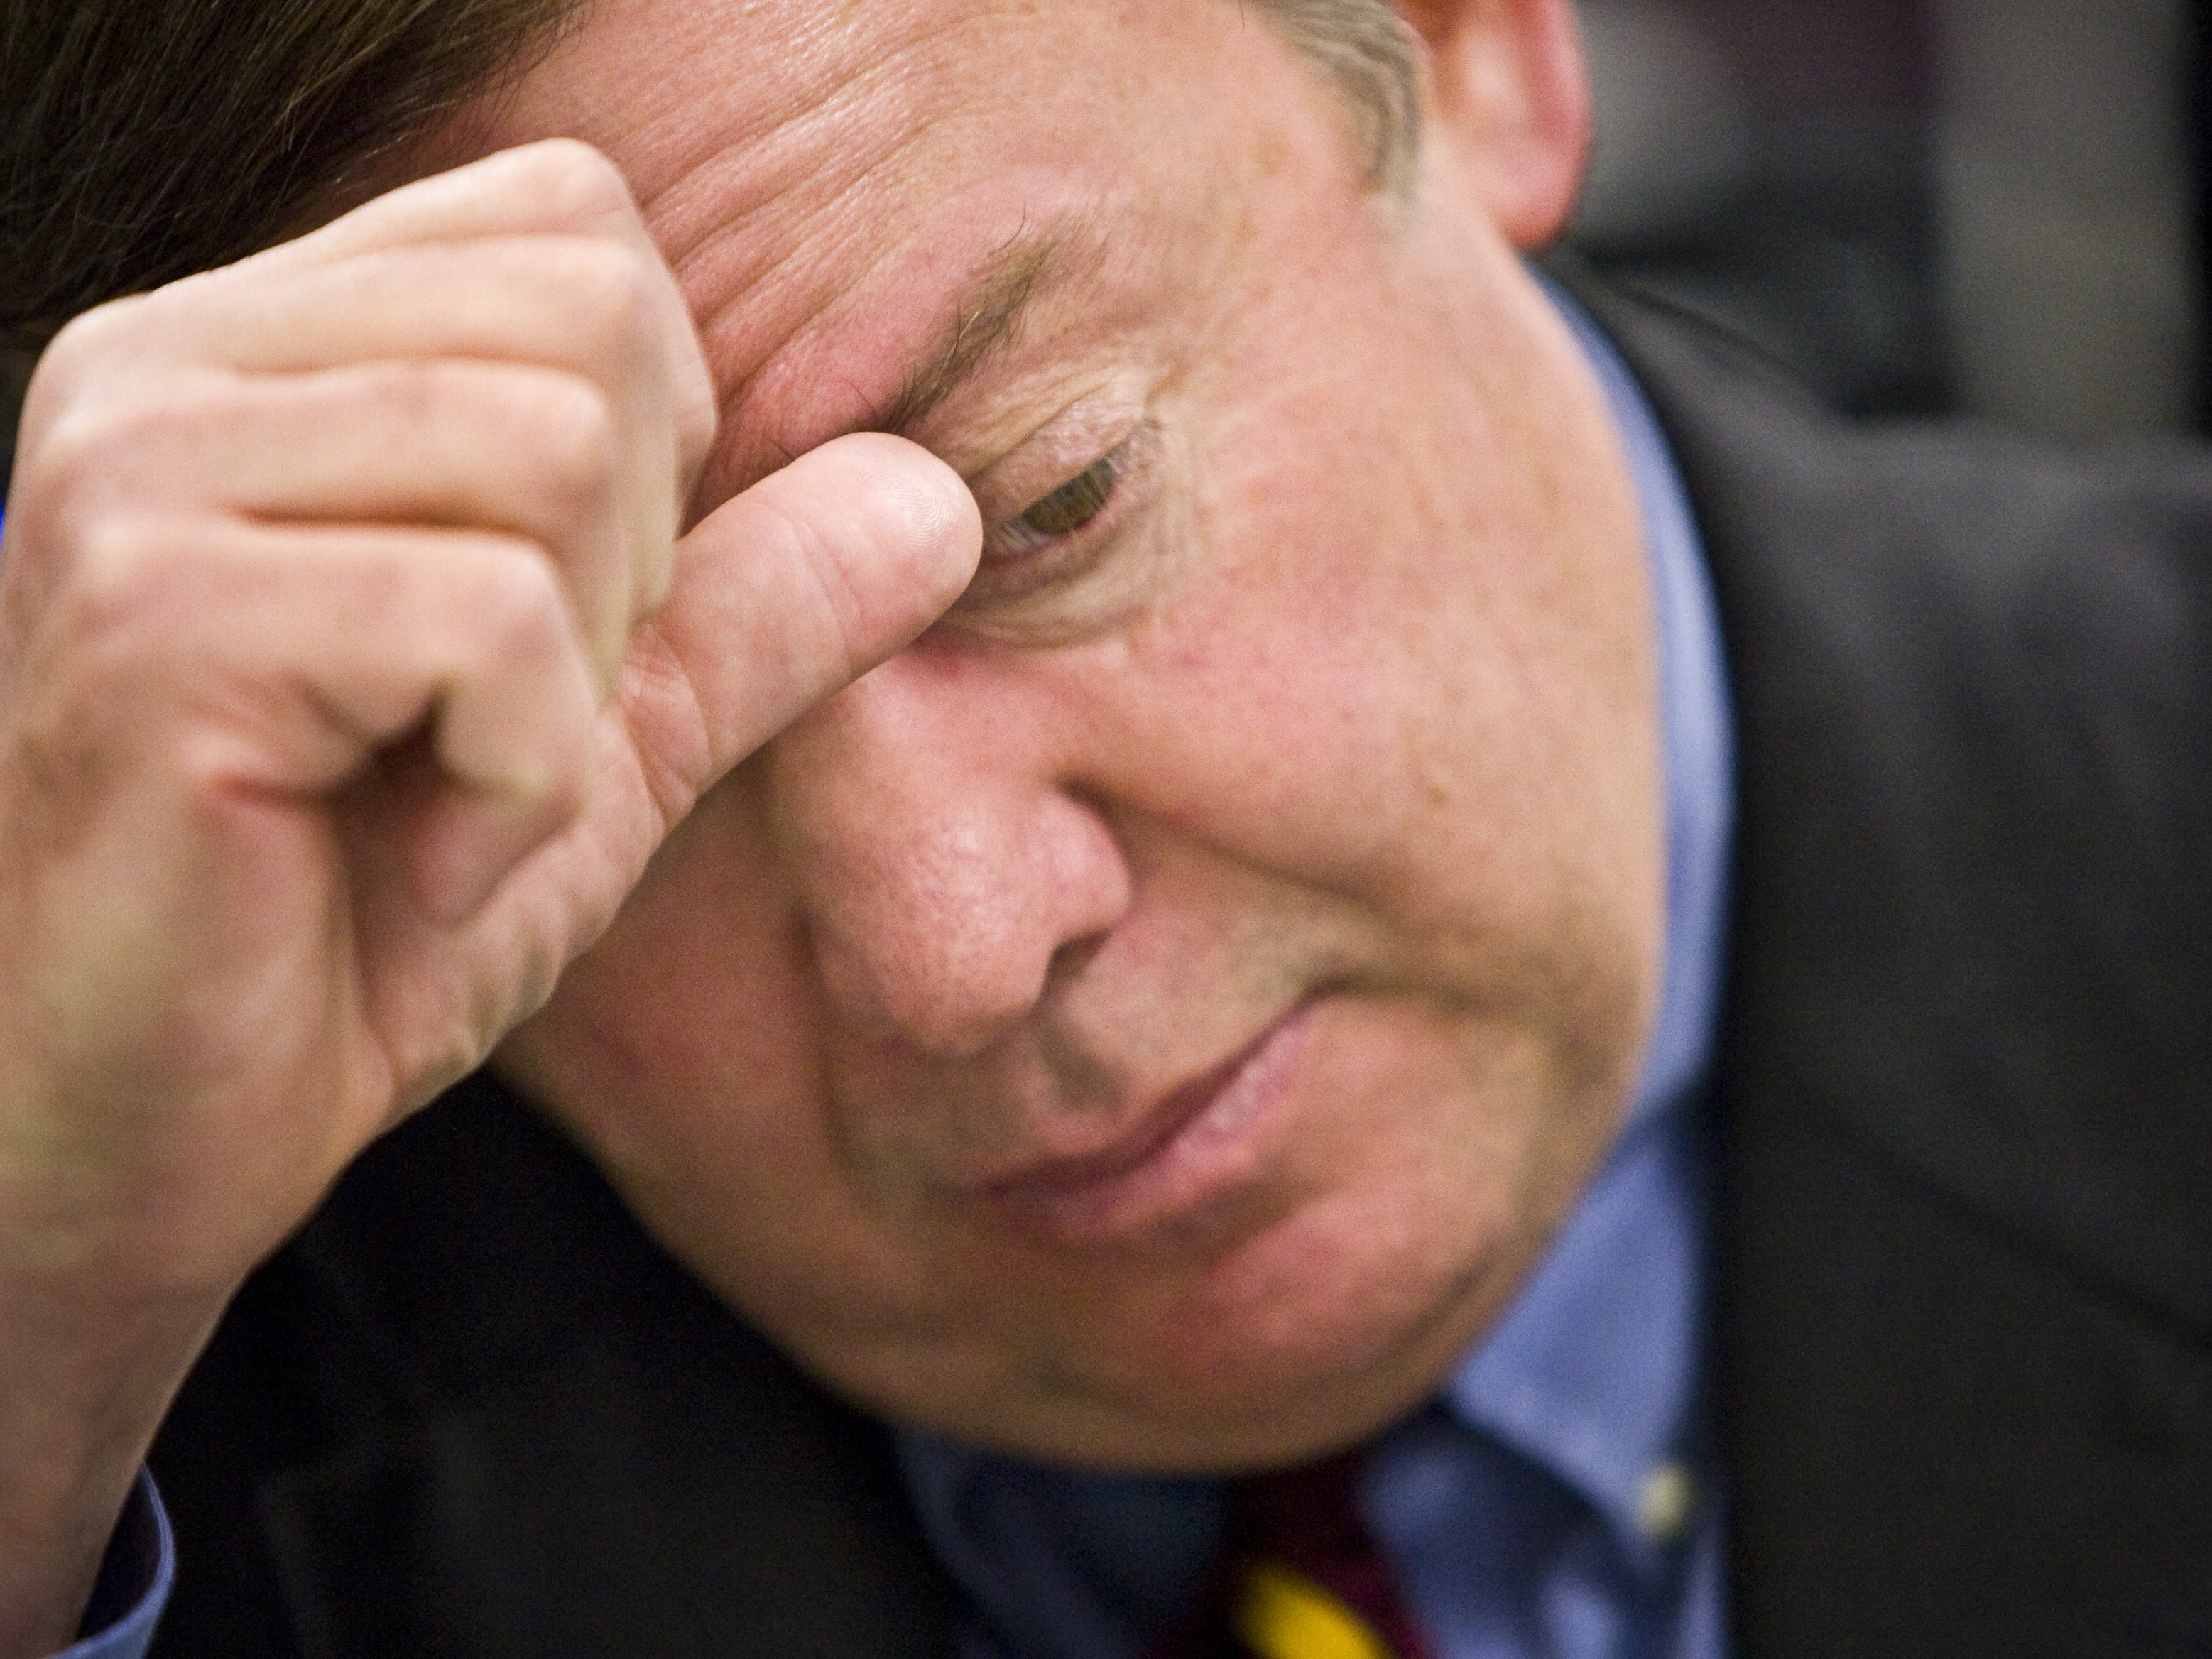 ASU President Michael Crow addresses concerns about the Polytechnic campus's presence in Mesa at a 2010 campus luncheon.